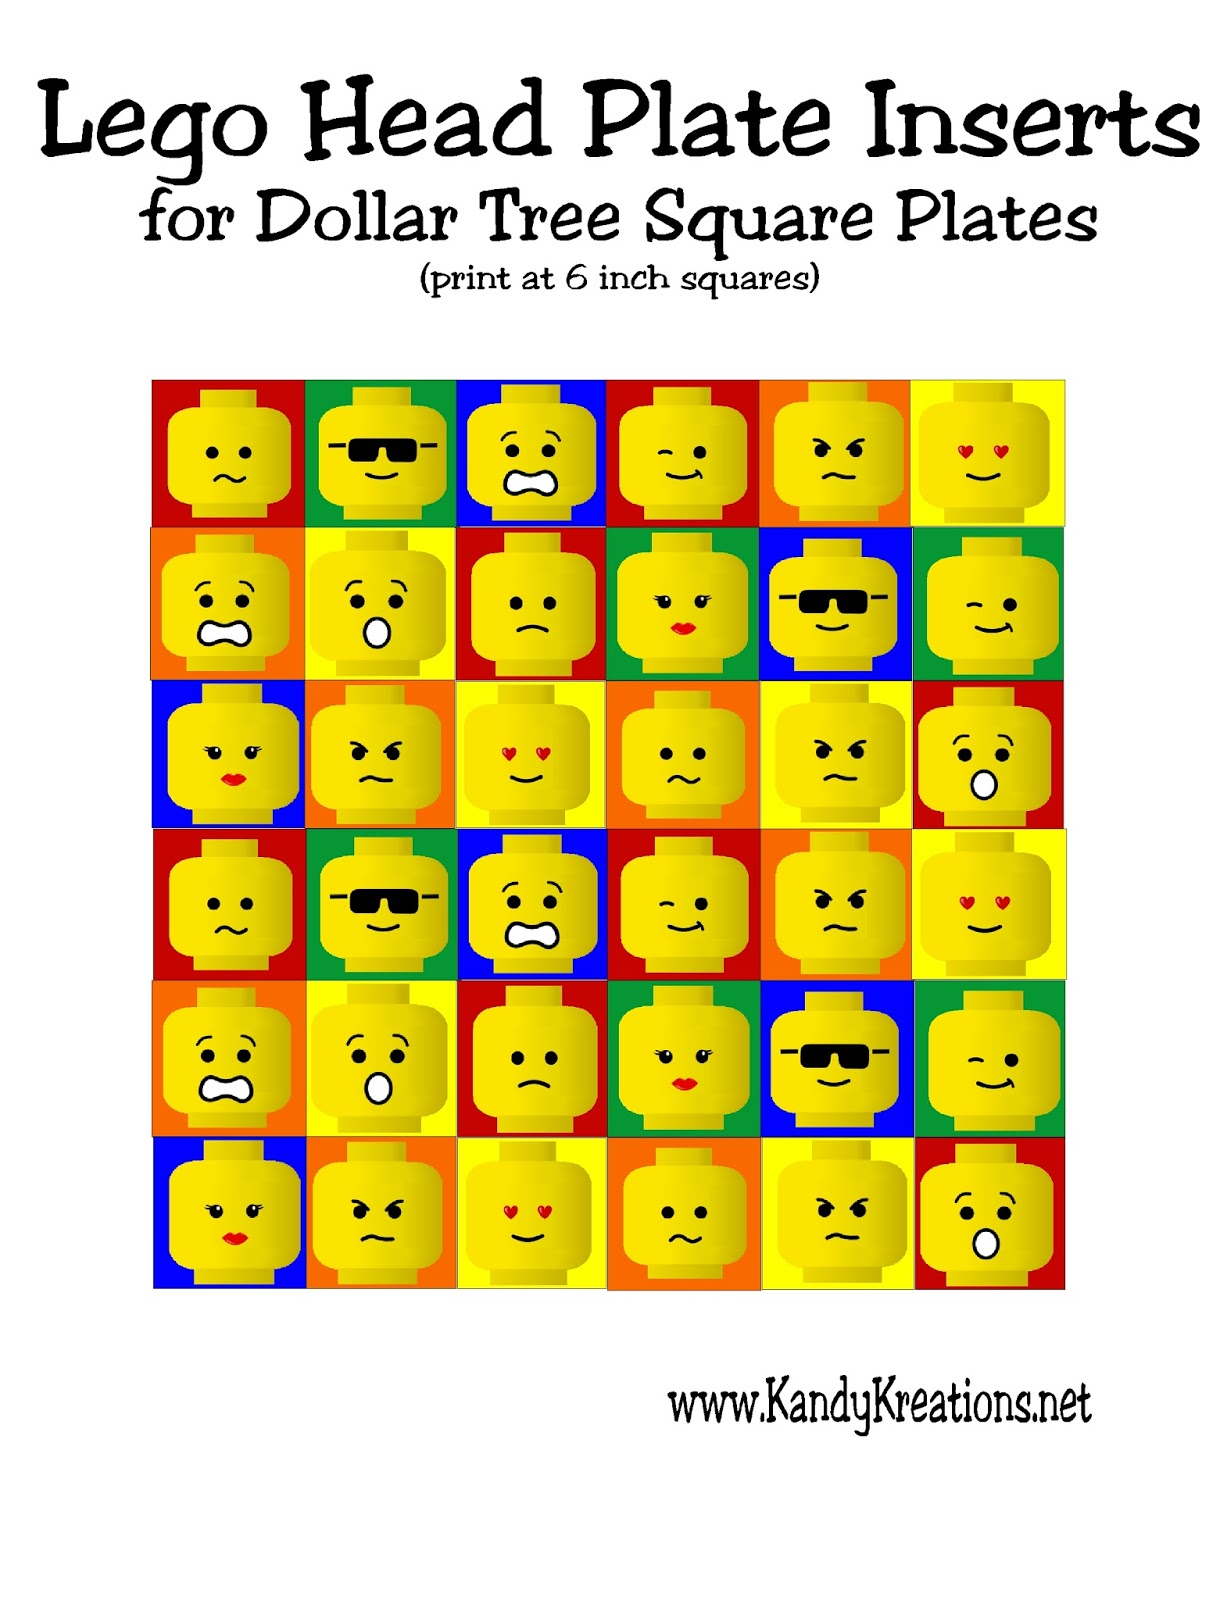 graphic relating to Lego Head Printable known as Do it yourself Bash Mother: Lego Intellect Plate Increase Printable